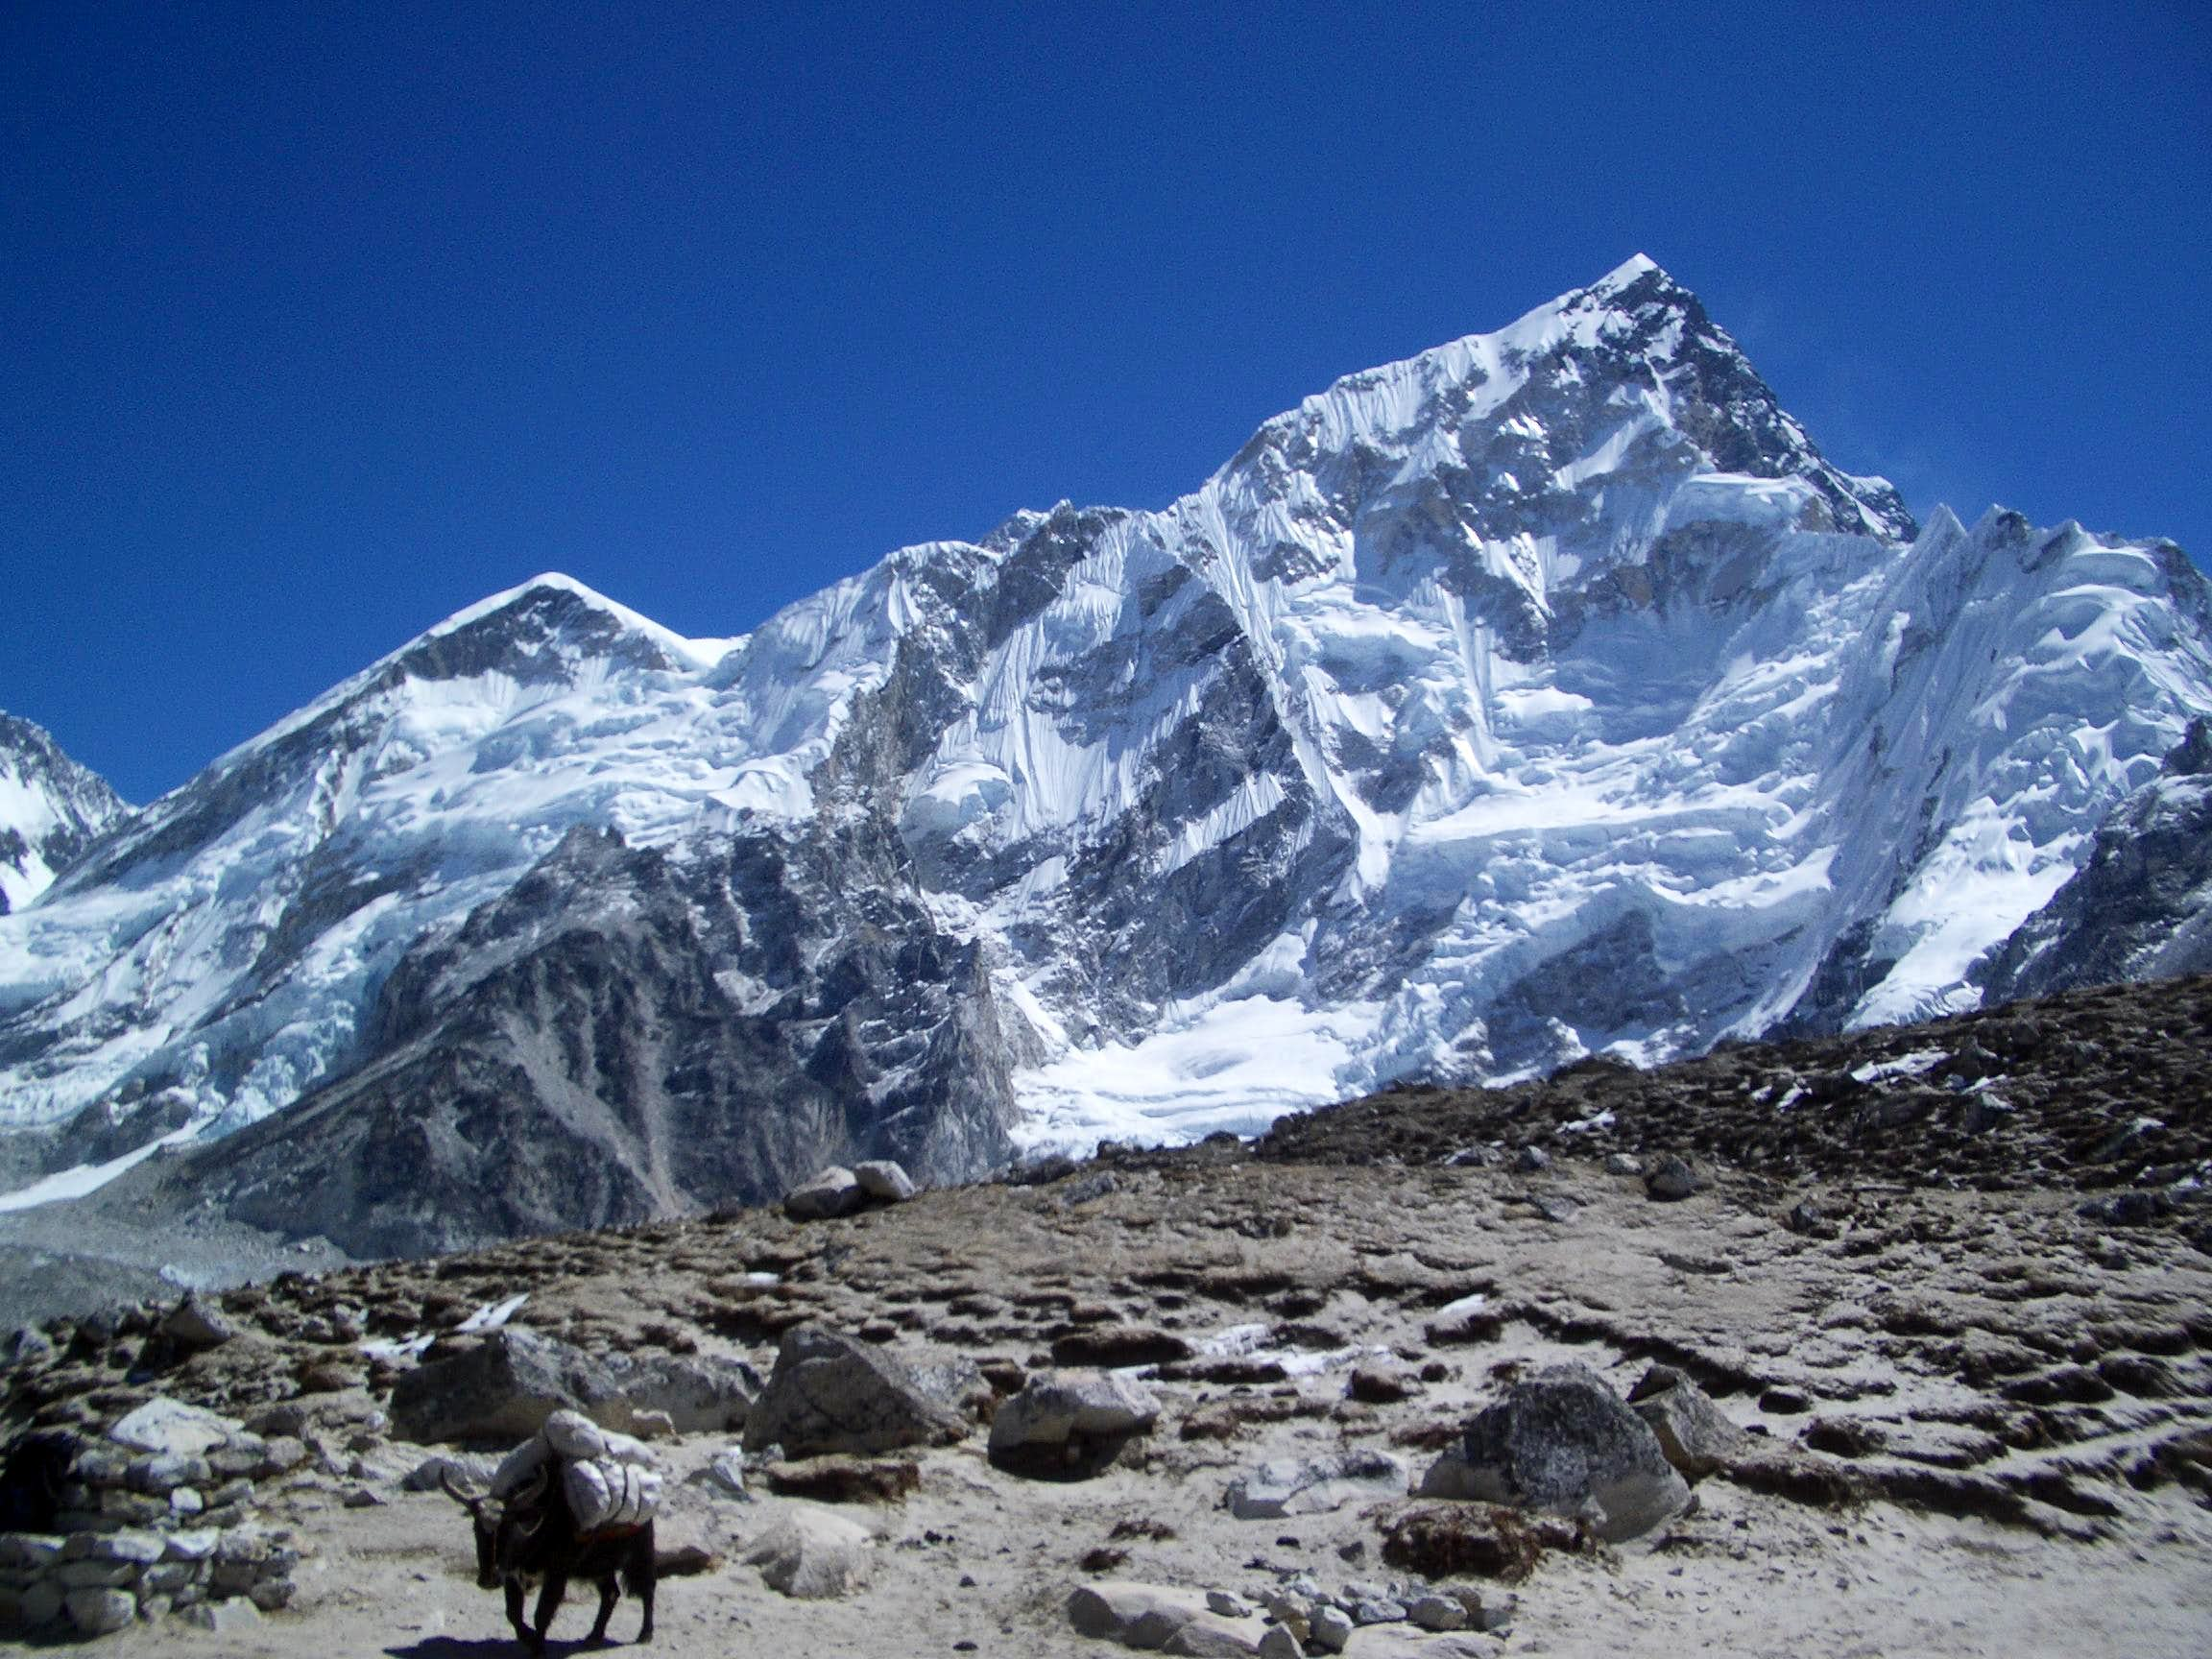 Nepal mountains around Khumbu